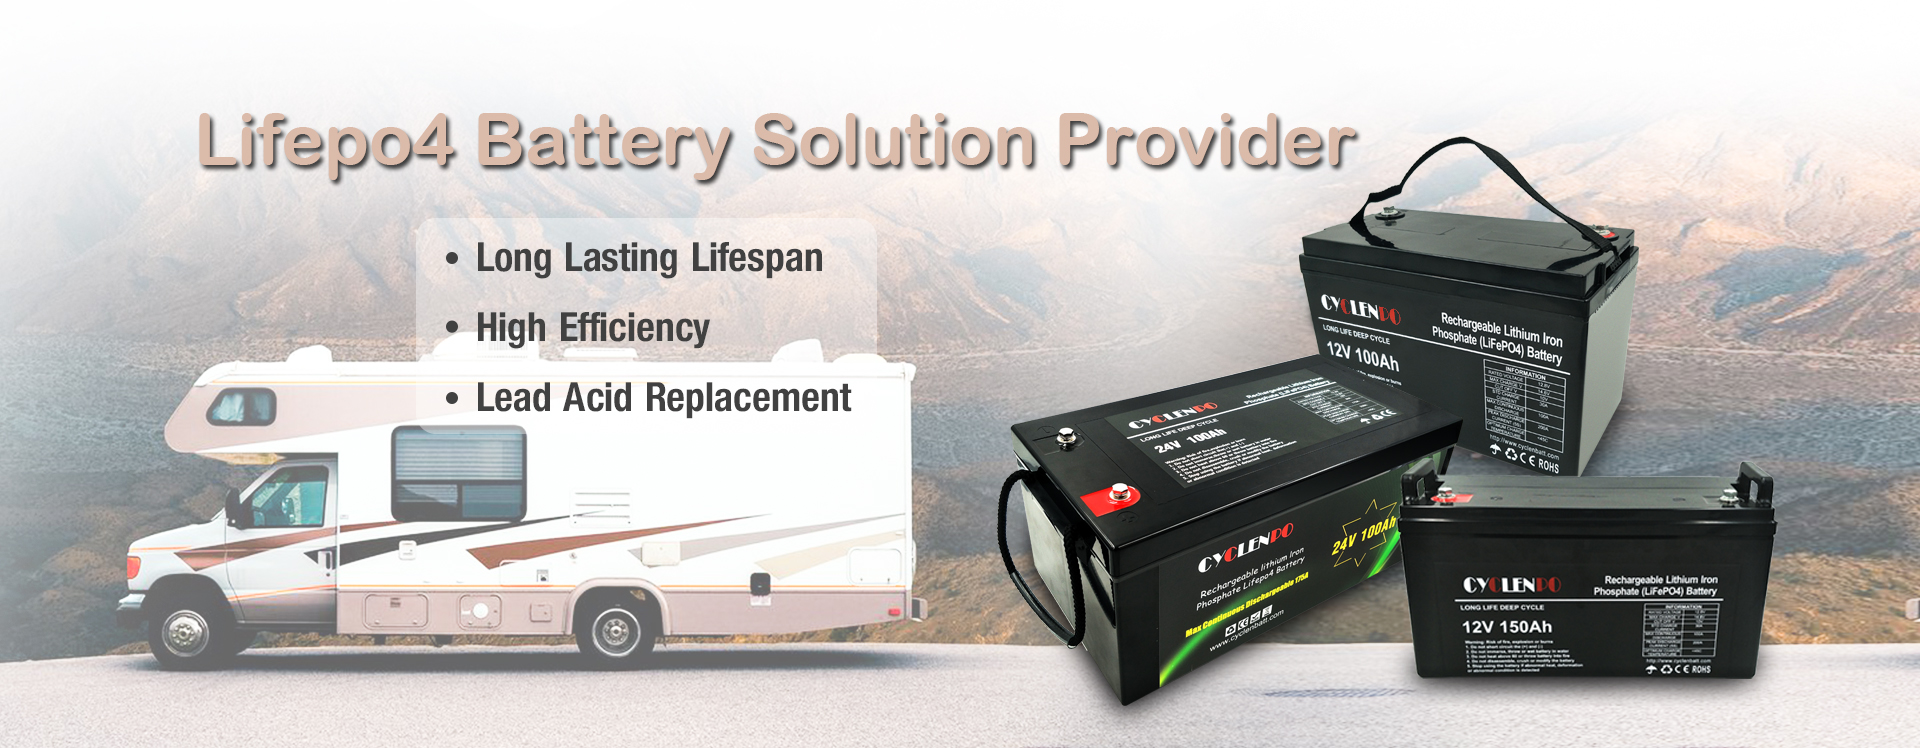 lifepo4 battery manufacturer